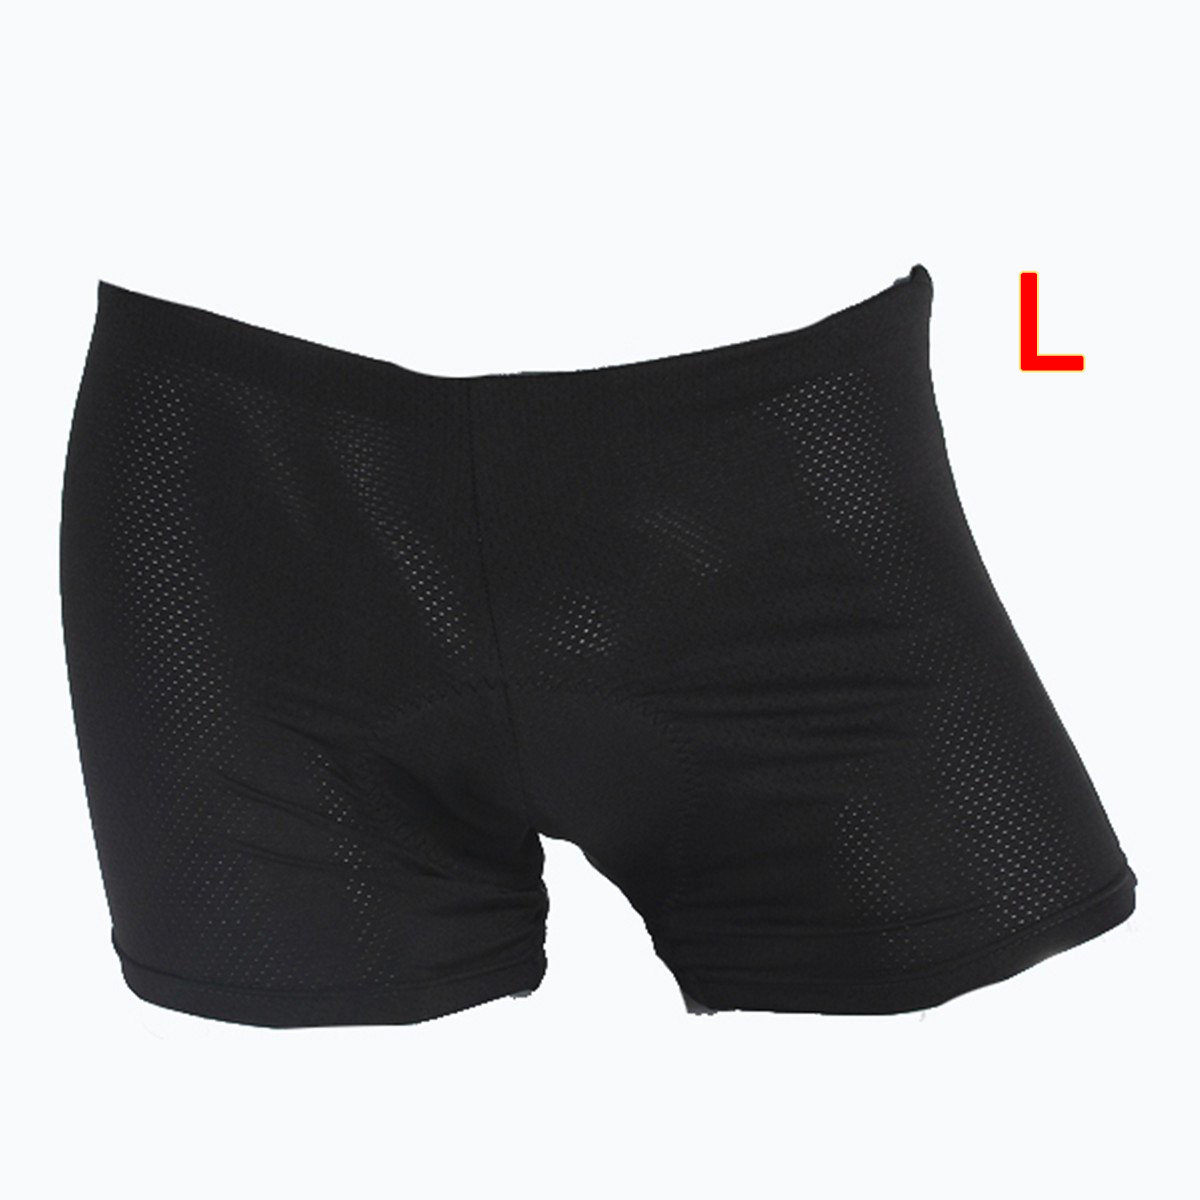 THZY Underwear Bicycle racing cycling Cycling sport bike 3D Panties Bib shorts Boxer Comfortable protect pants black FOR... by THZY